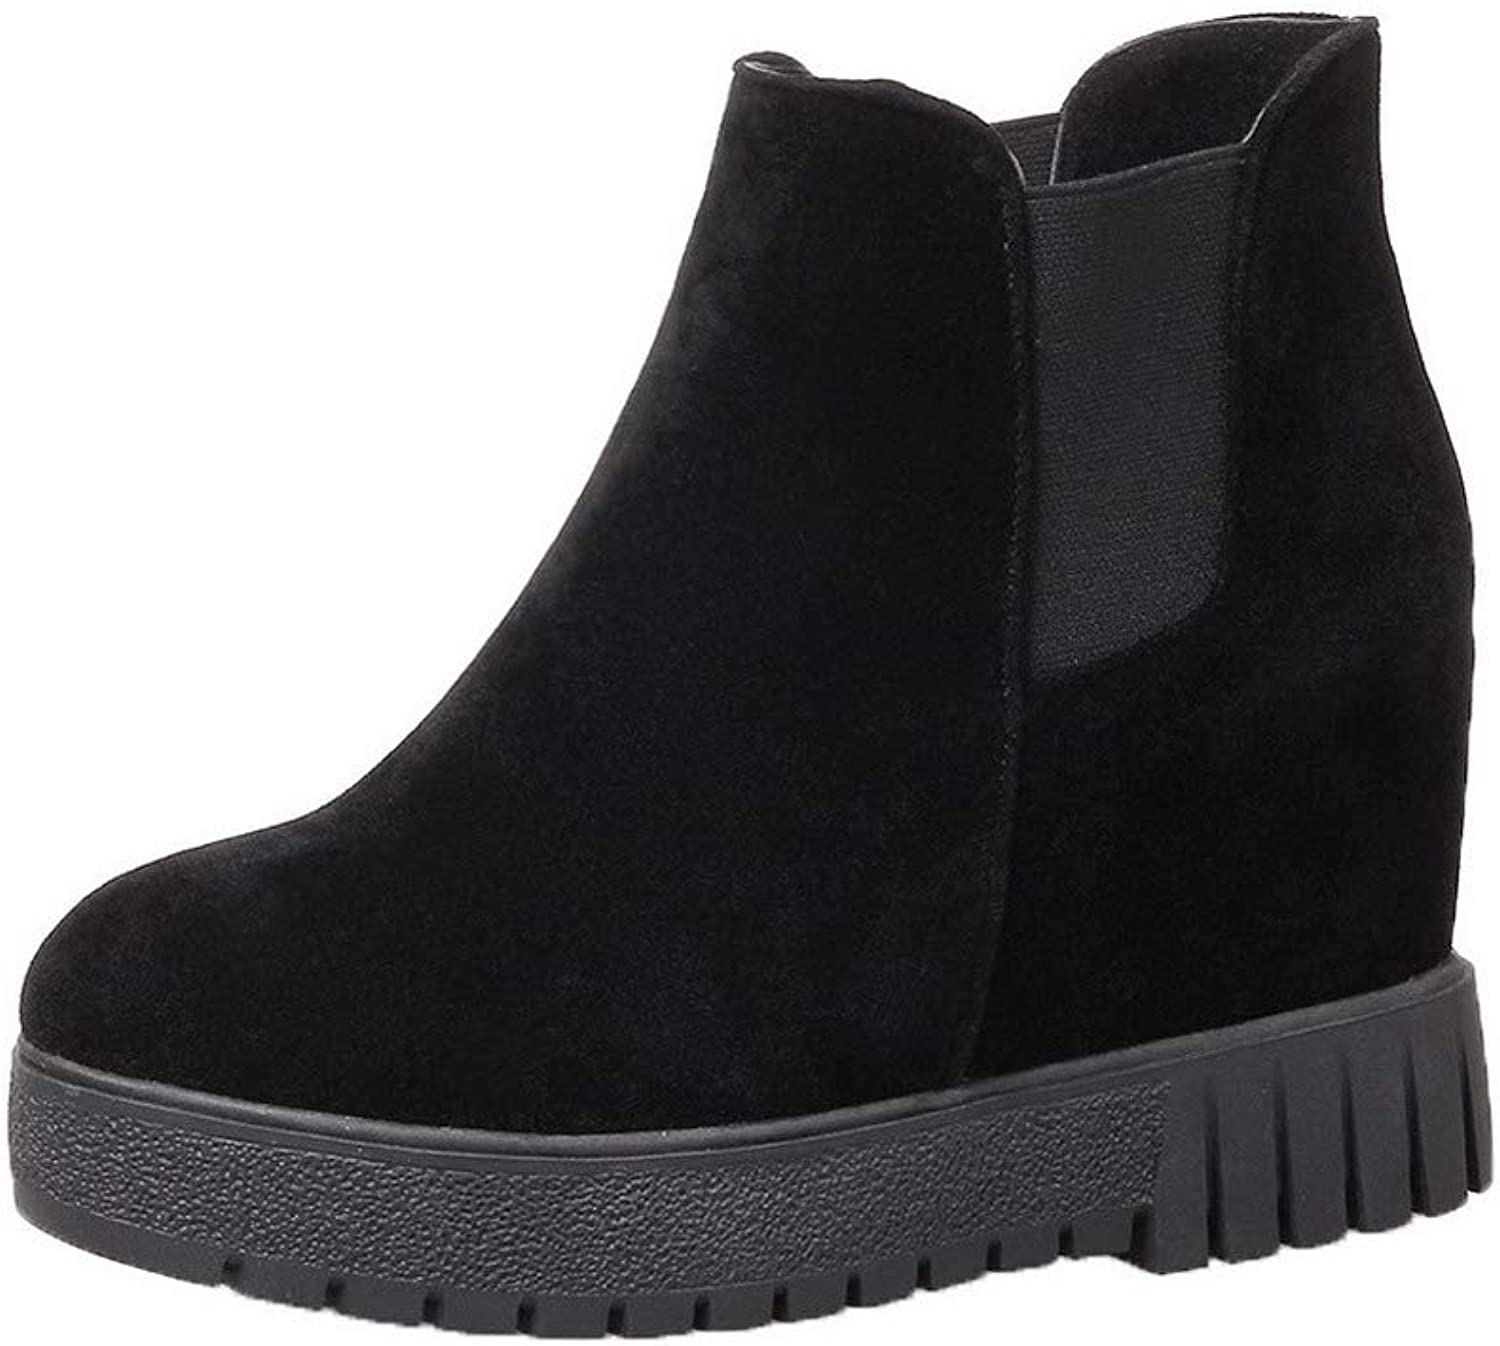 WeenFashion Women's Pull-On Closed-Toe High-Heels Frosted Low-Top Boots, AMGXX114711